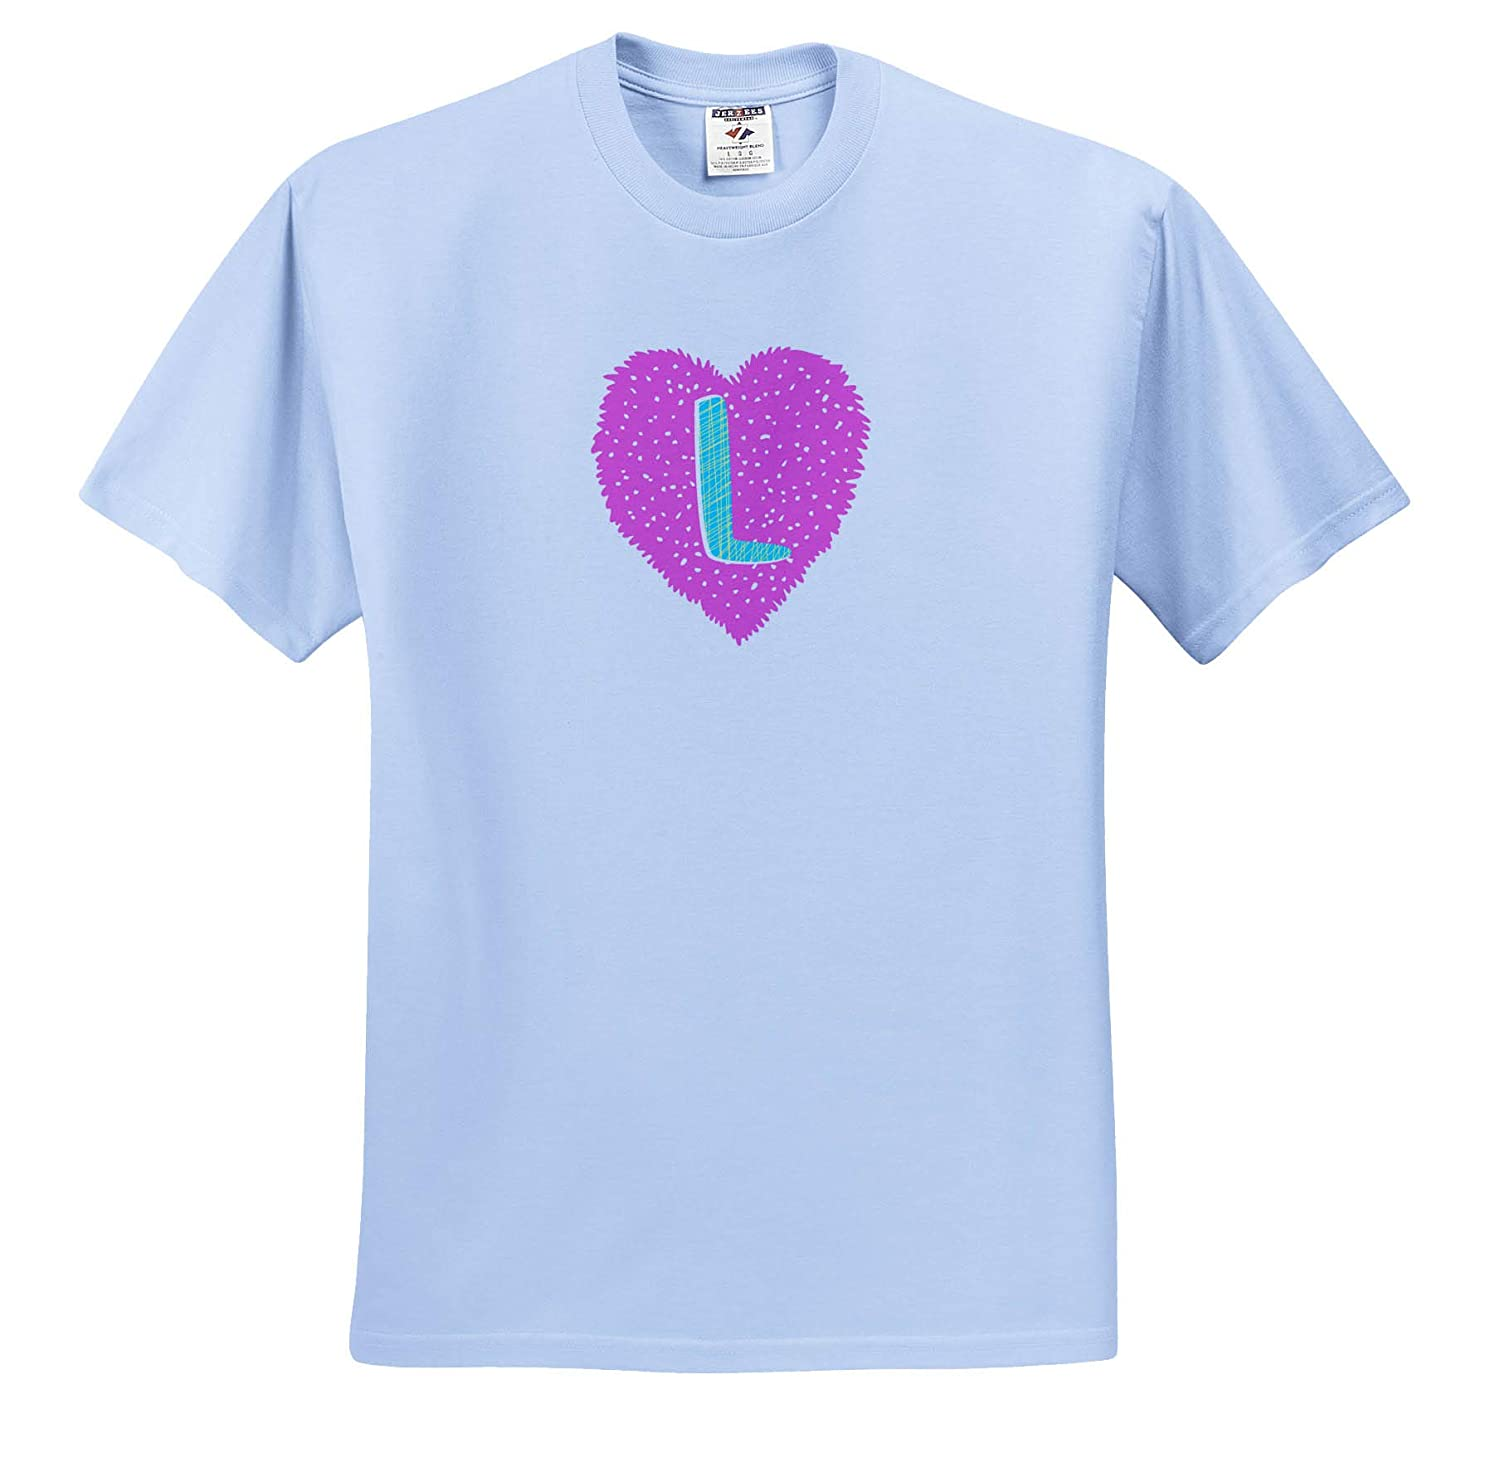 3dRose Carrie Image Quote Adult T-Shirt XL Image of Monogram Letter L ts/_317751